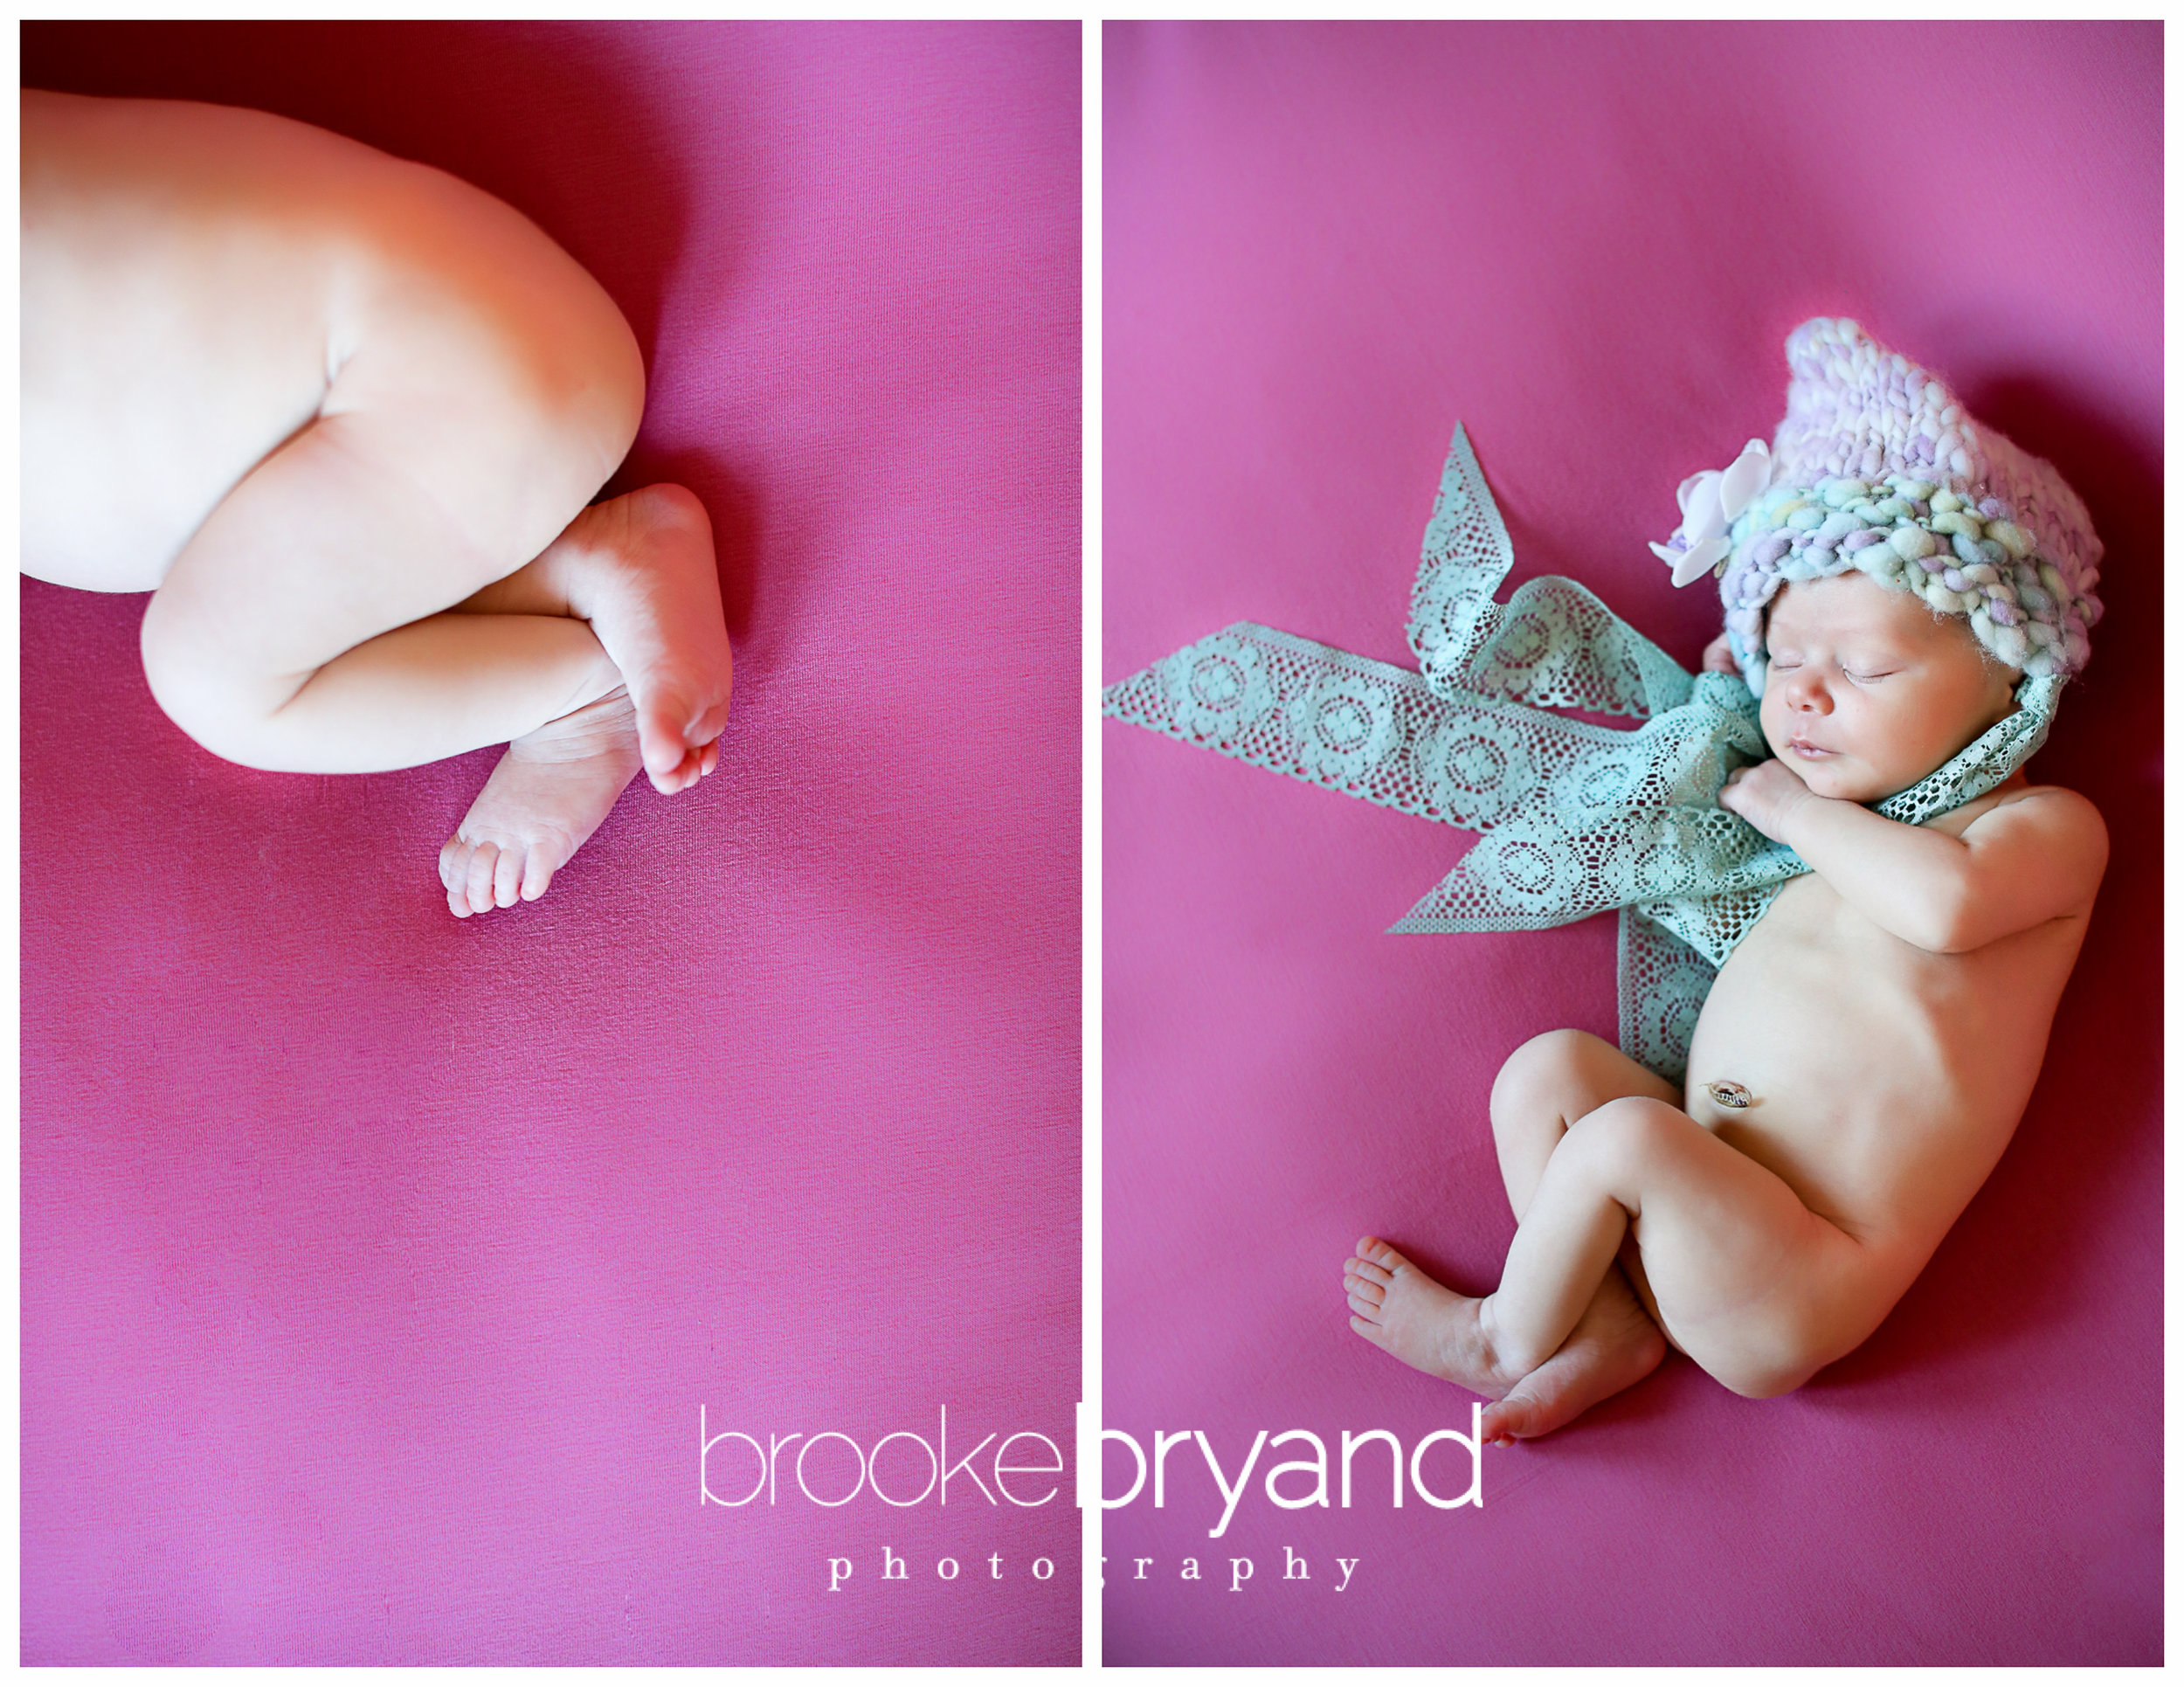 Brooke-Bryand-Photography-San-Francisco-Newborn-Photographer-2-up-lewis-1b.jpg